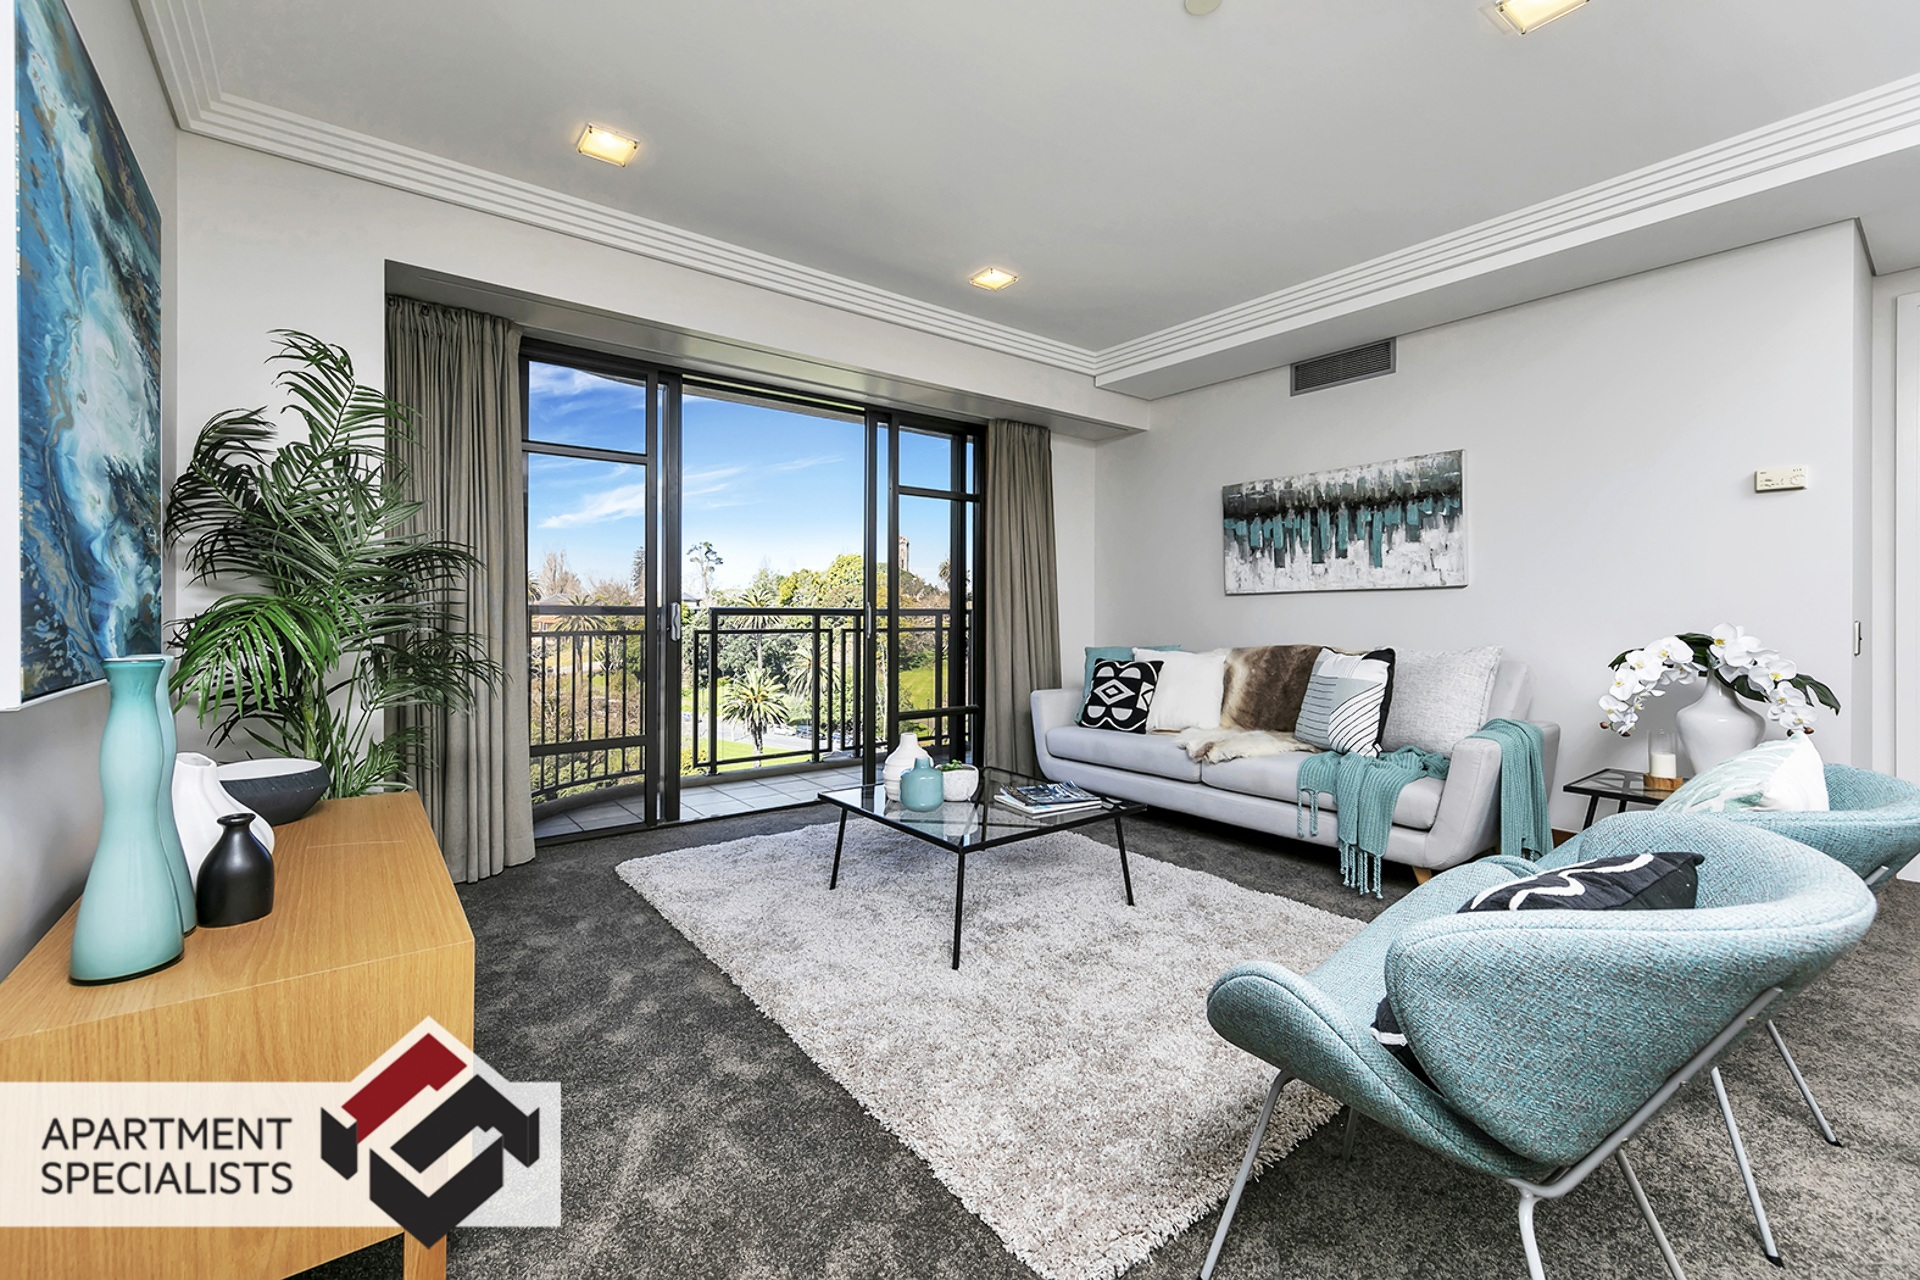 Hero | 1 Courthouse Lane, City Centre | Apartment Specialists